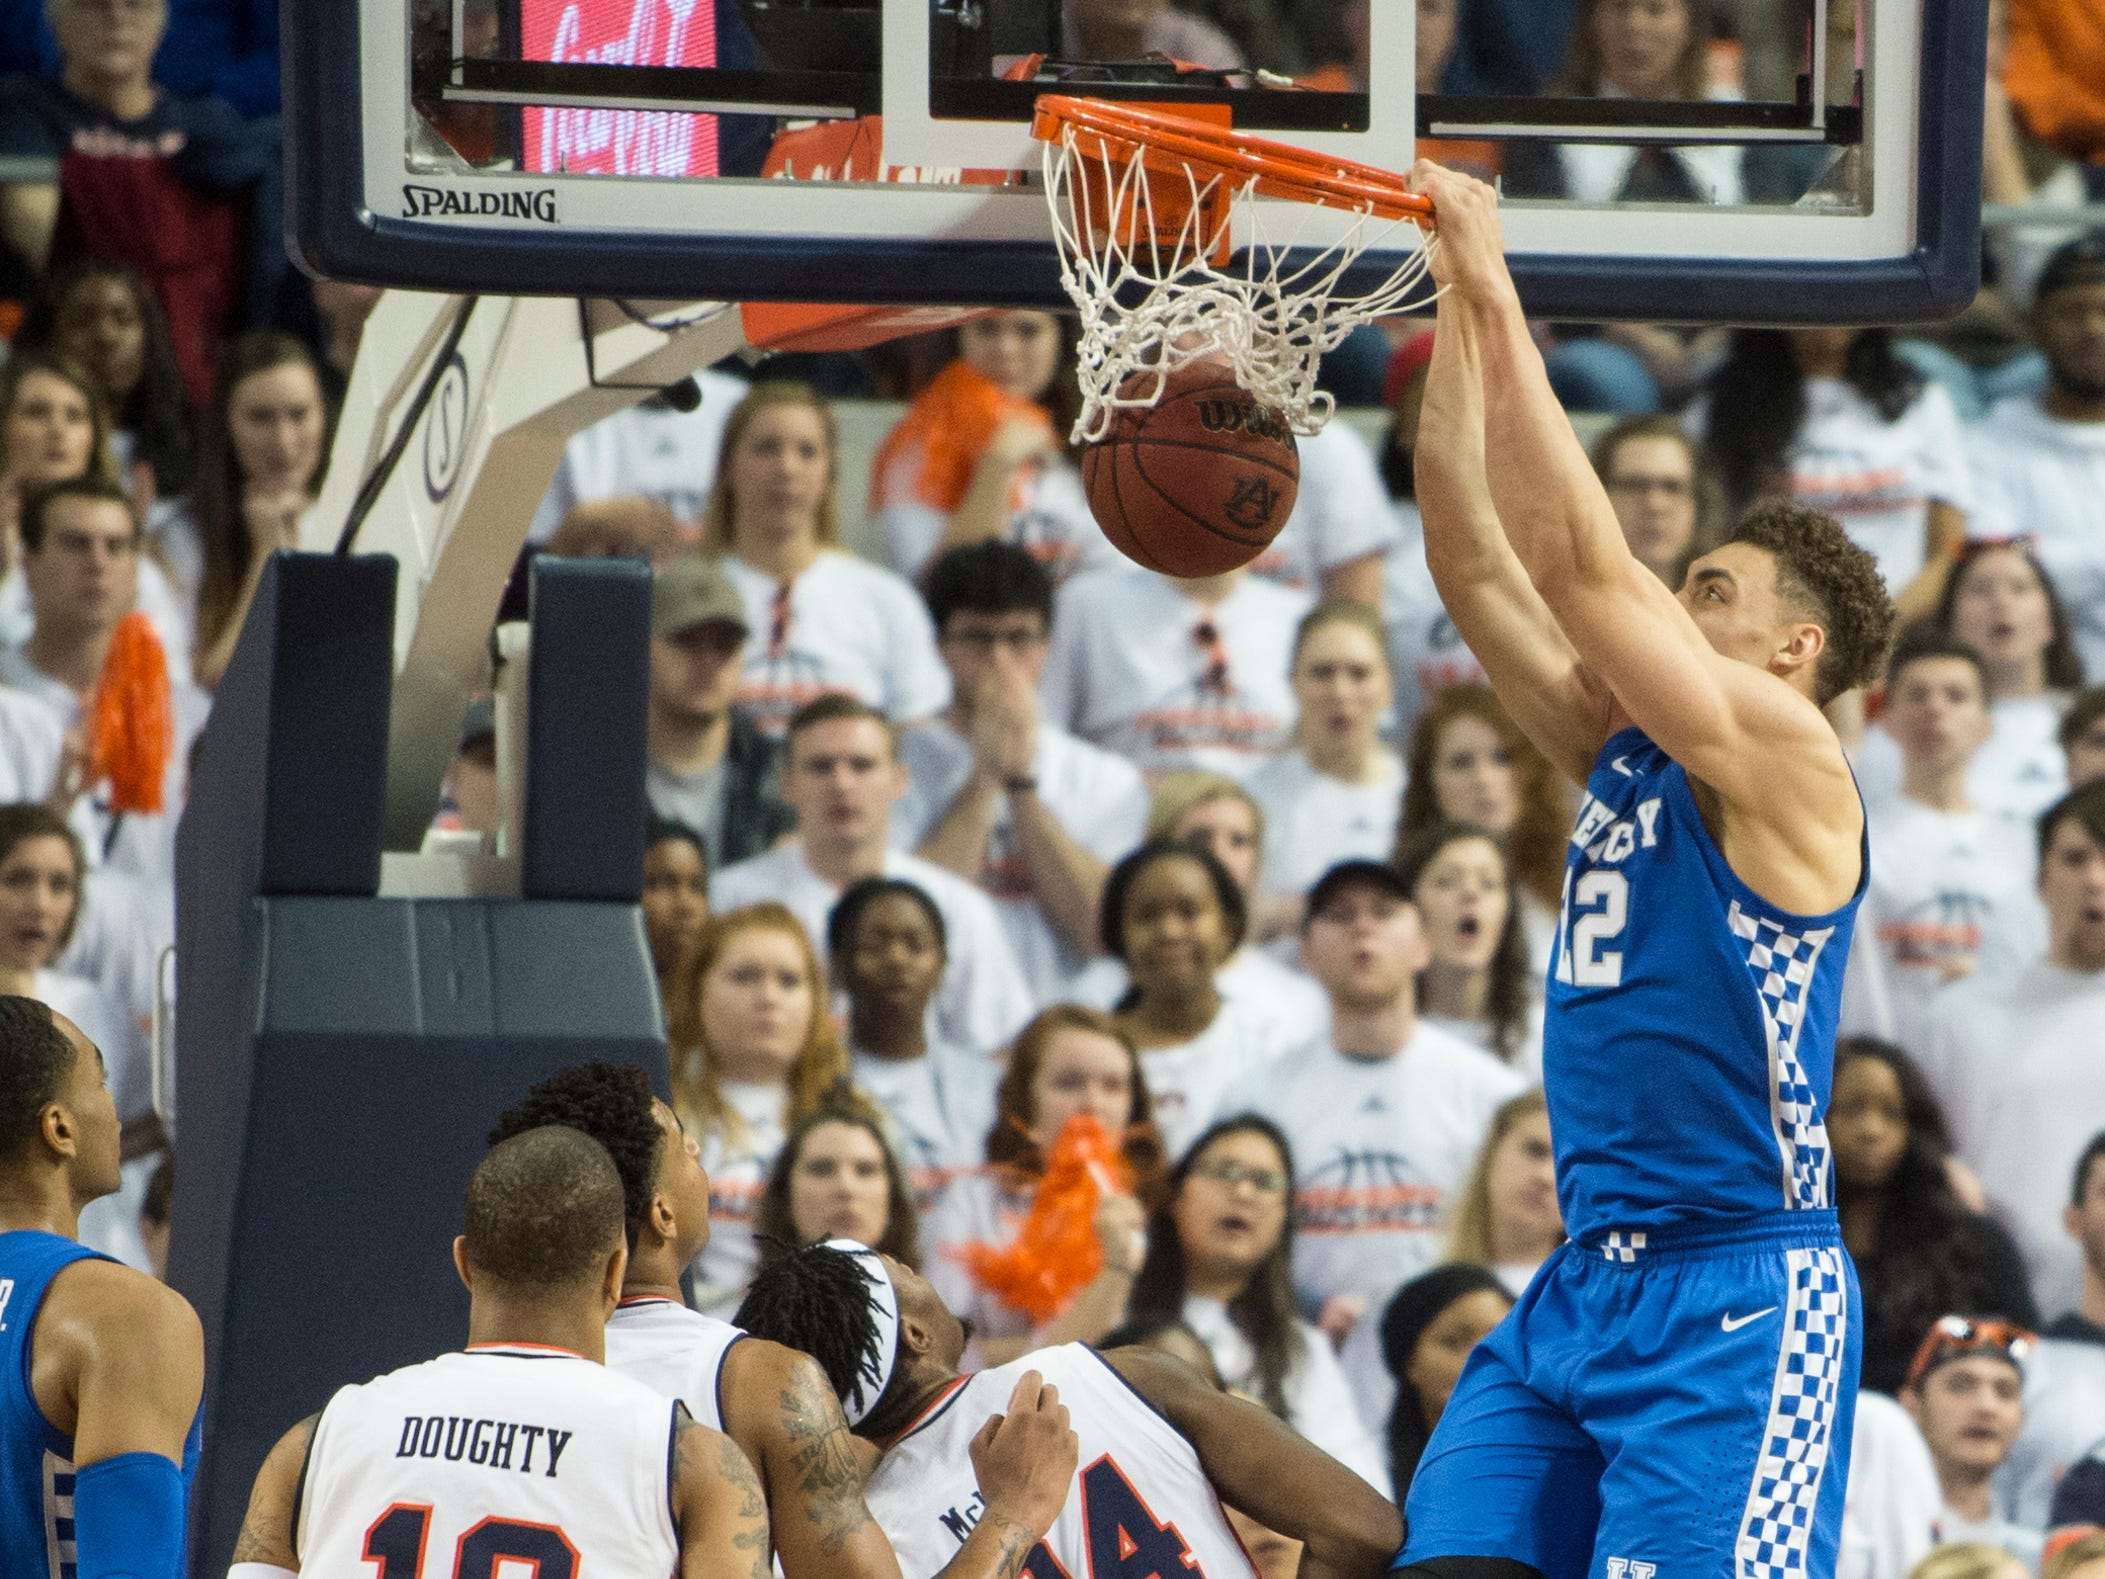 Kentucky forward Reid Travis (22) tip slams the ball at Auburn Arena in Auburn, Ala., on Saturday, Jan. 19, 2019. Kentucky leads Auburn 35-27 at halftime.